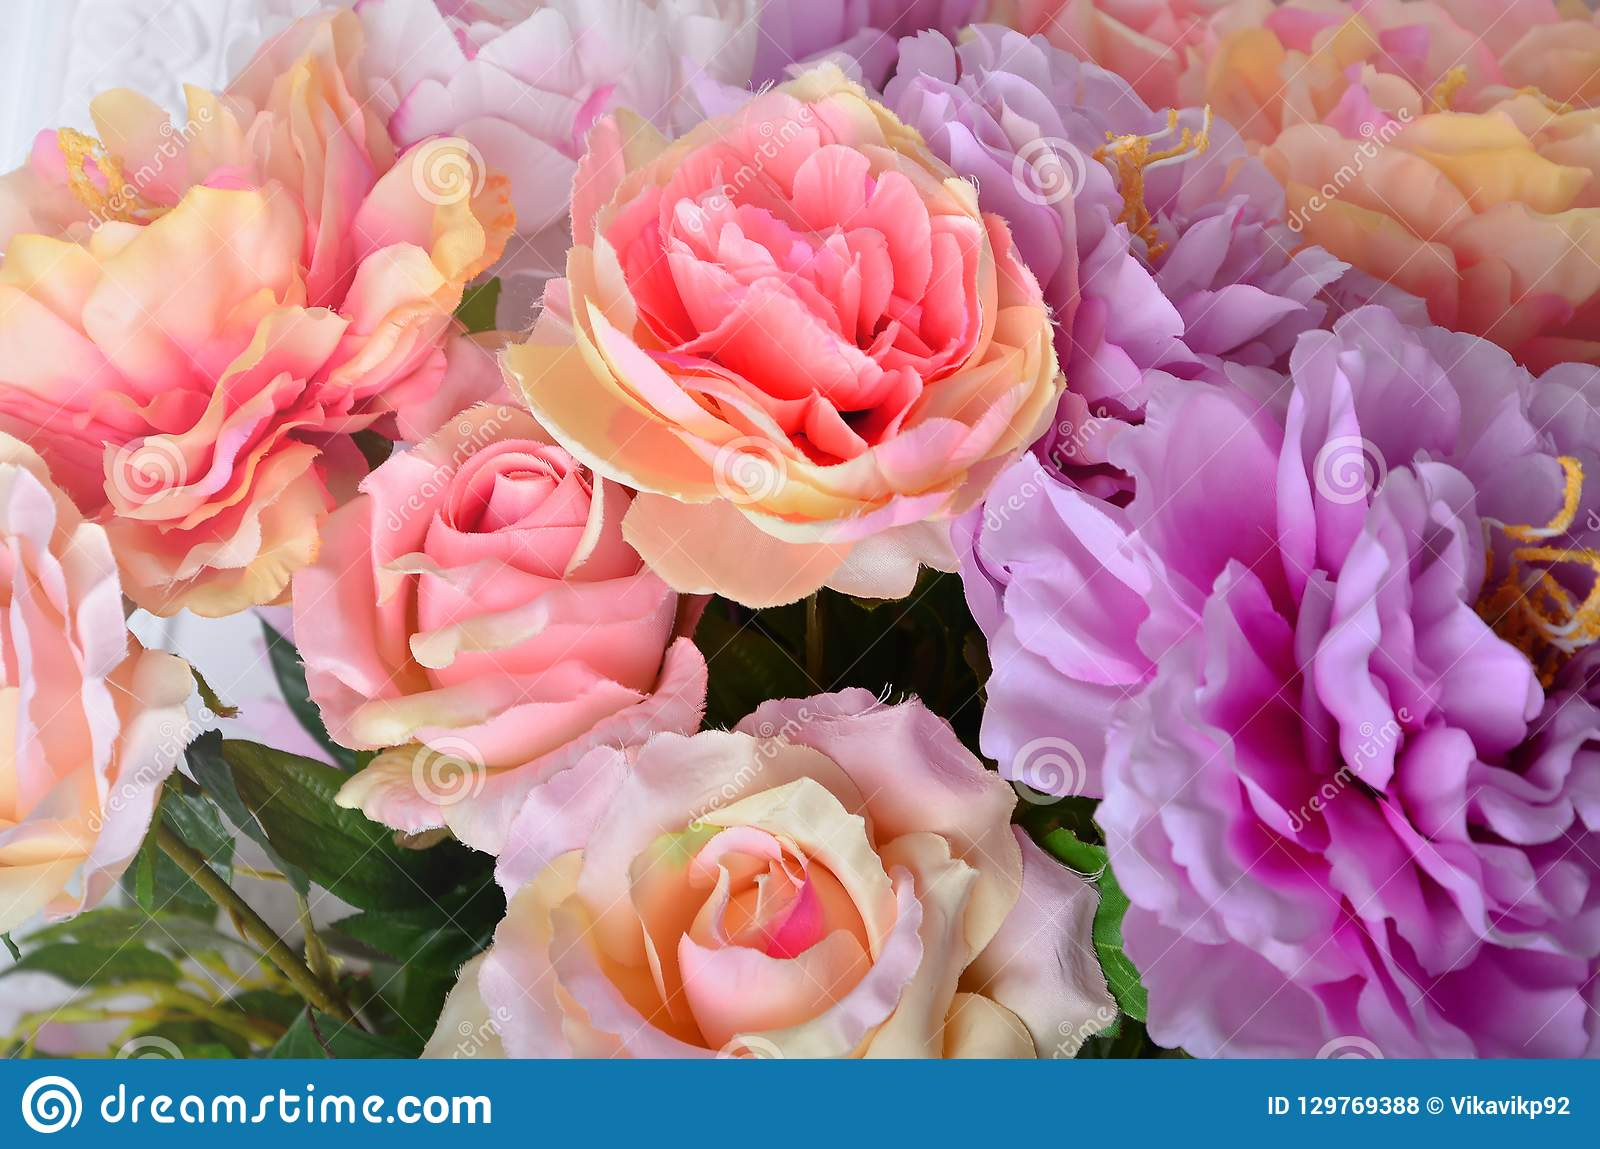 Beautiful multicolored artificial flowers background. flowers decor